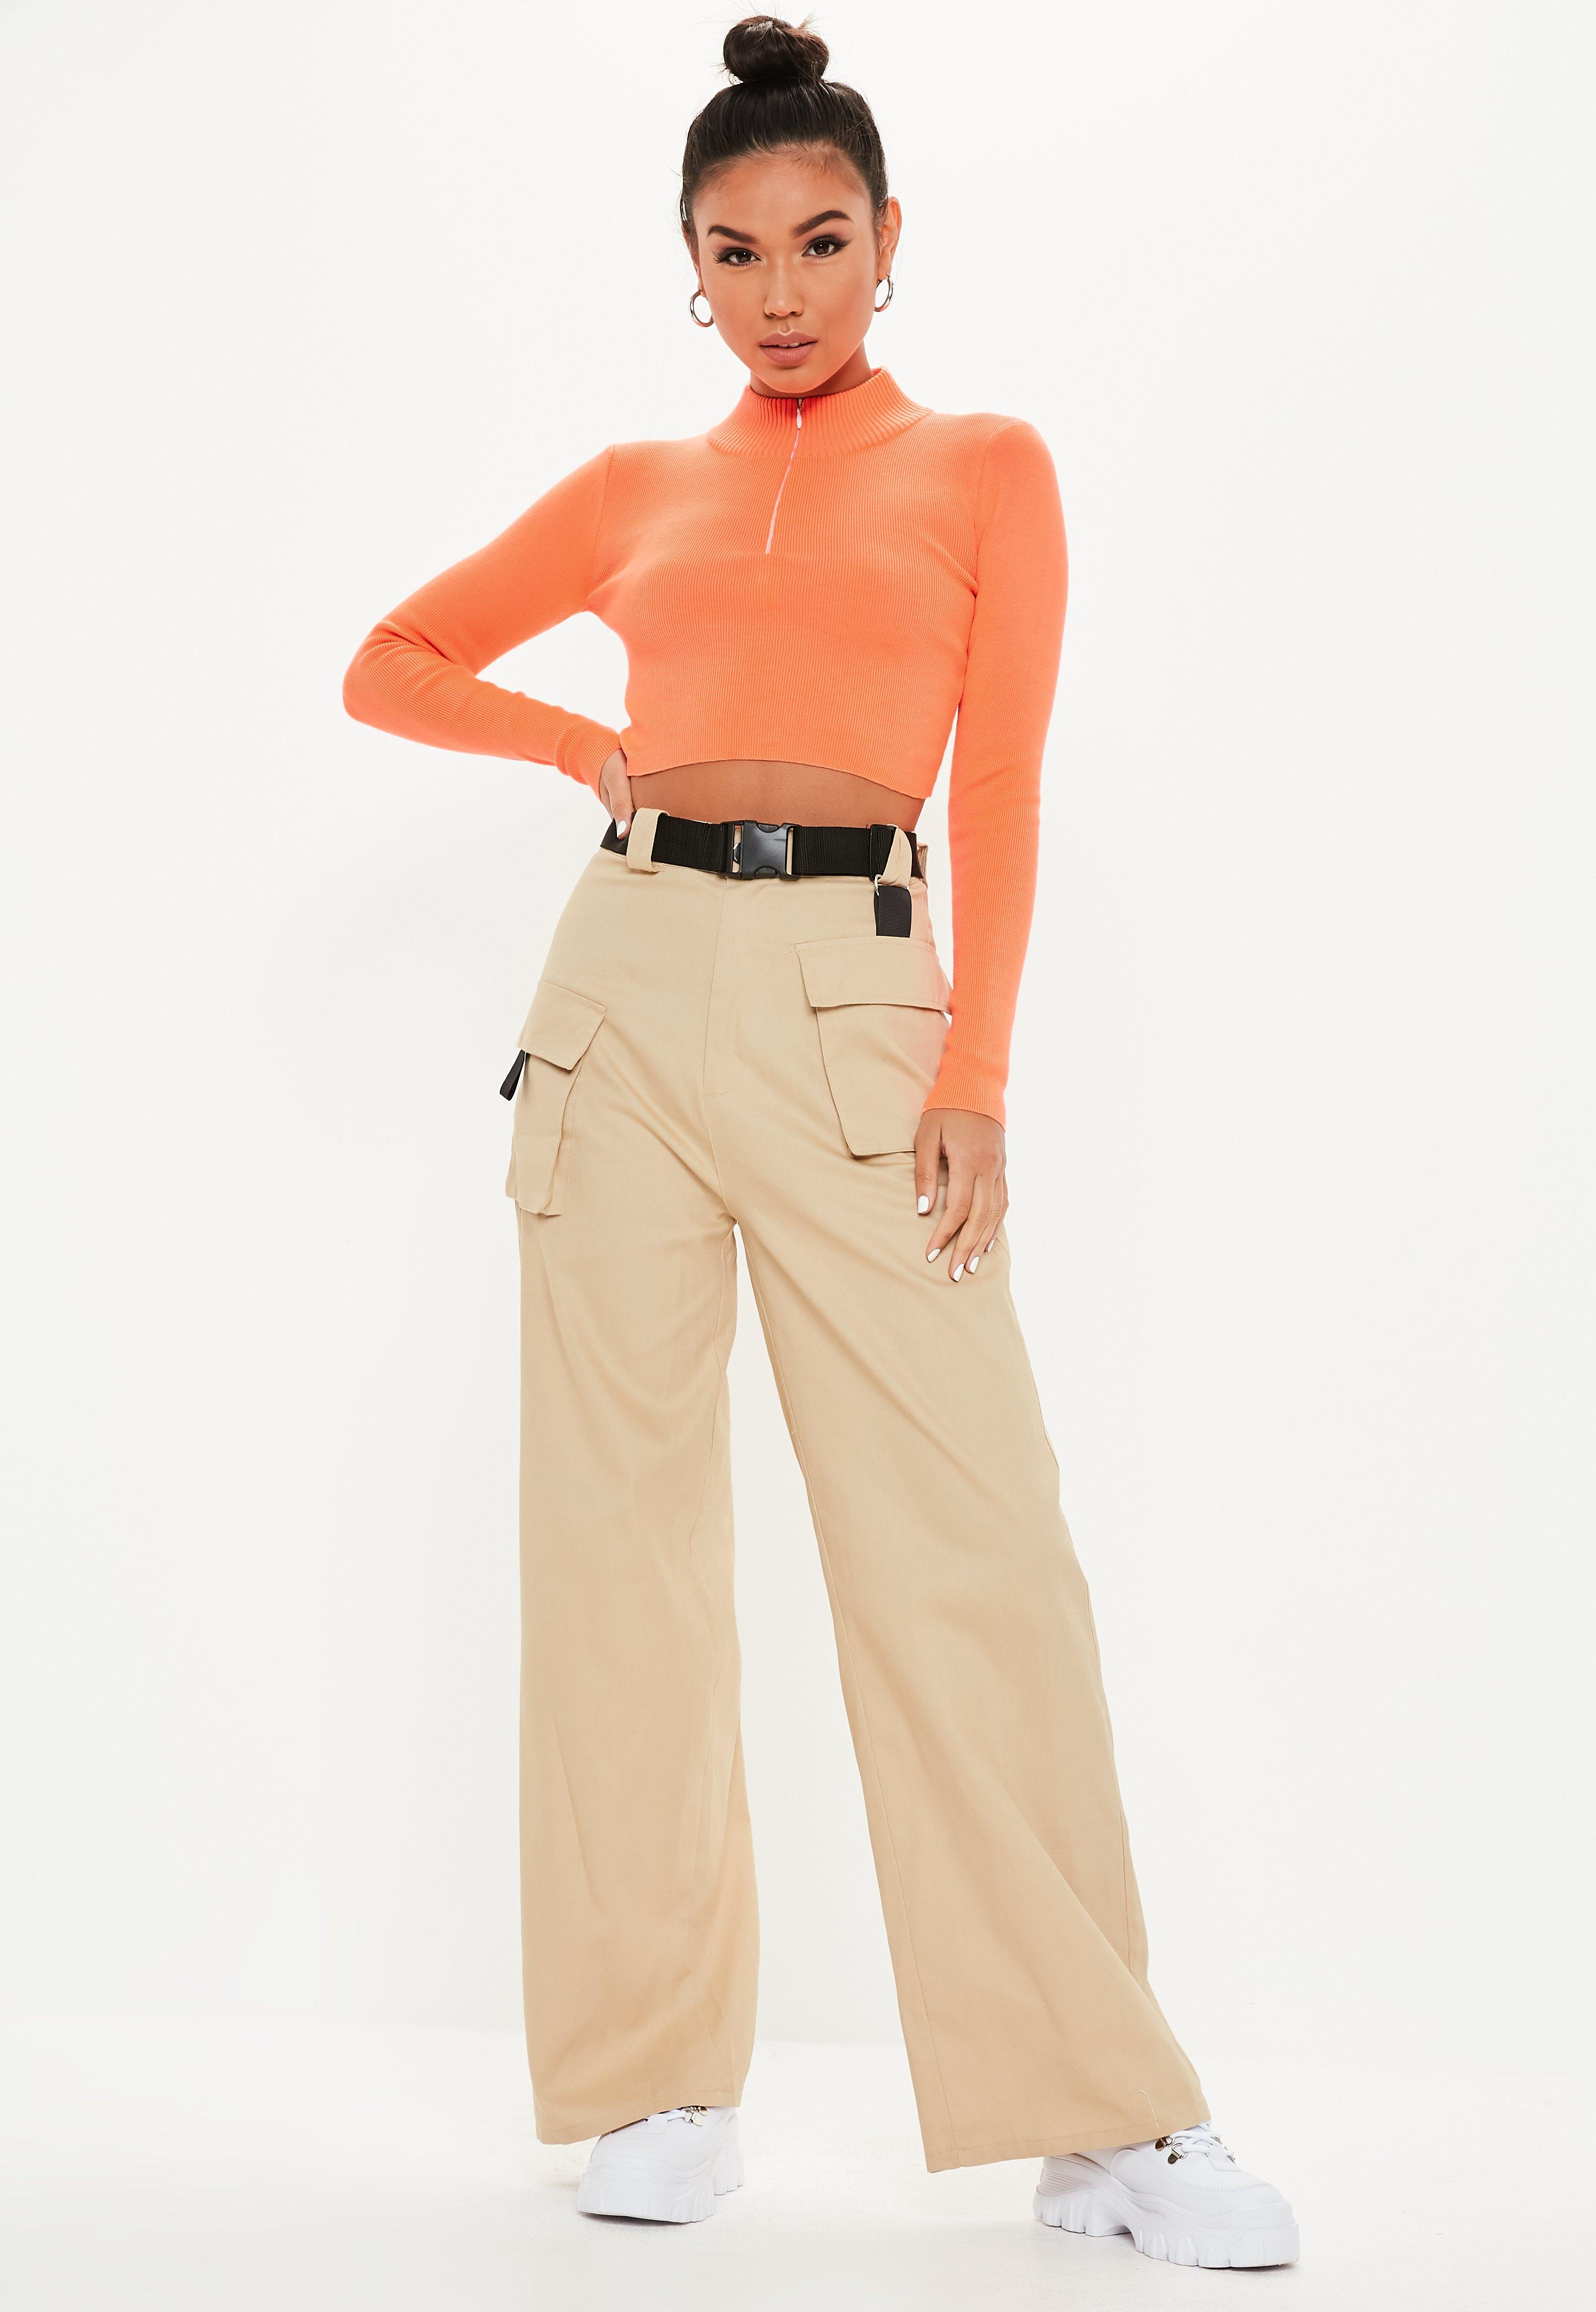 50fa8ce8 Nude Trousers | Women's Nude Trousers Online - Missguided